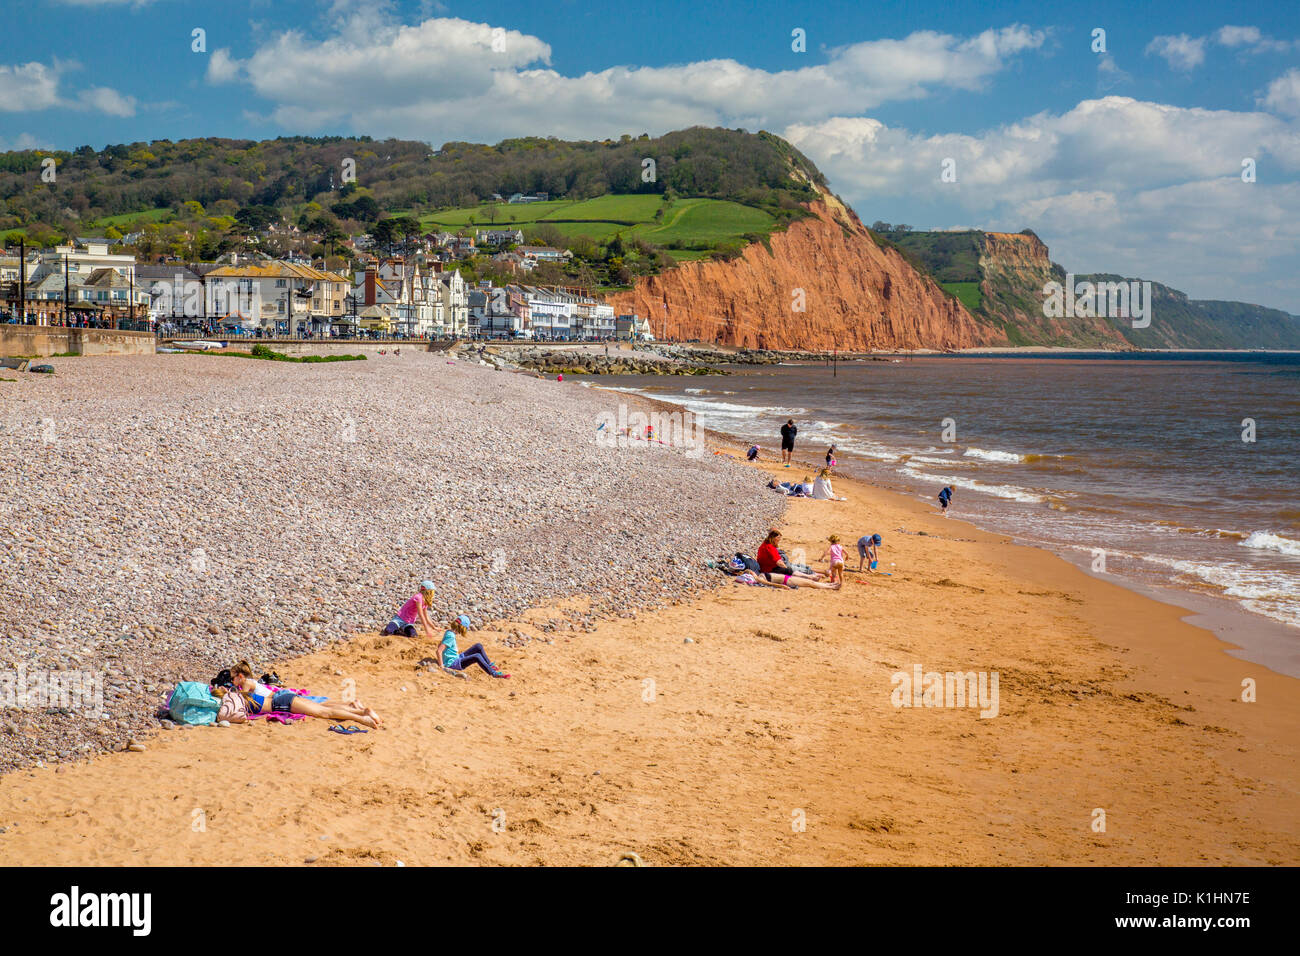 Families playing on the sandy beach at Sidmouth, a popular seaside resort on the Jurassic Coast flanked red sandstone cliffs, Devon, England, UK - Stock Image